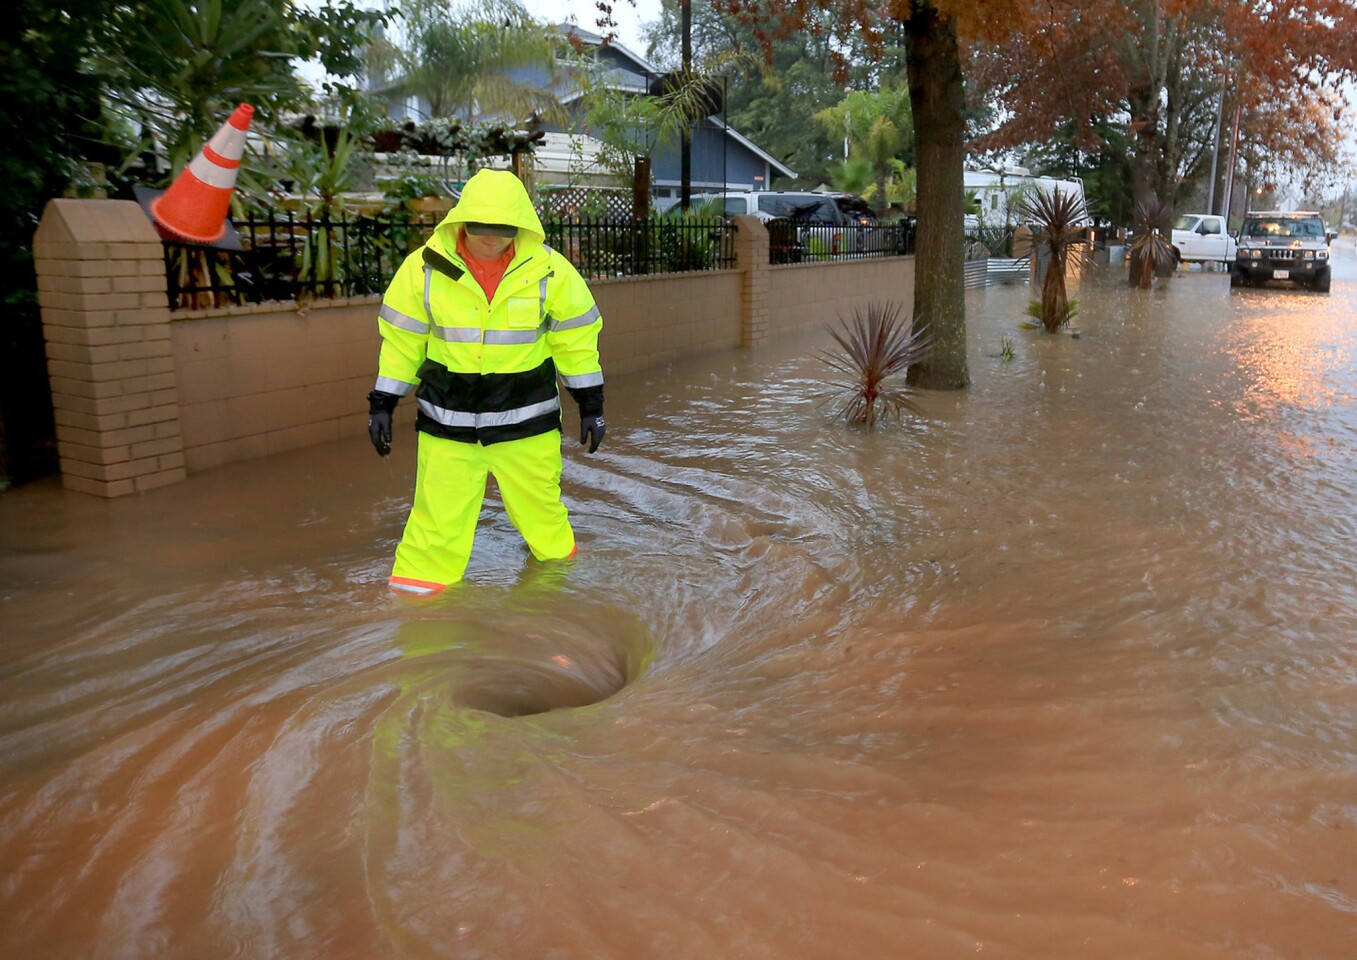 Scott Taylor of Windsor Public Works opens a manhole to help drainage along Old Redwood Highway in Windsor. A powerful storm churned down the West Coast on Thursday, bringing strong gales and much-needed rain and snow.